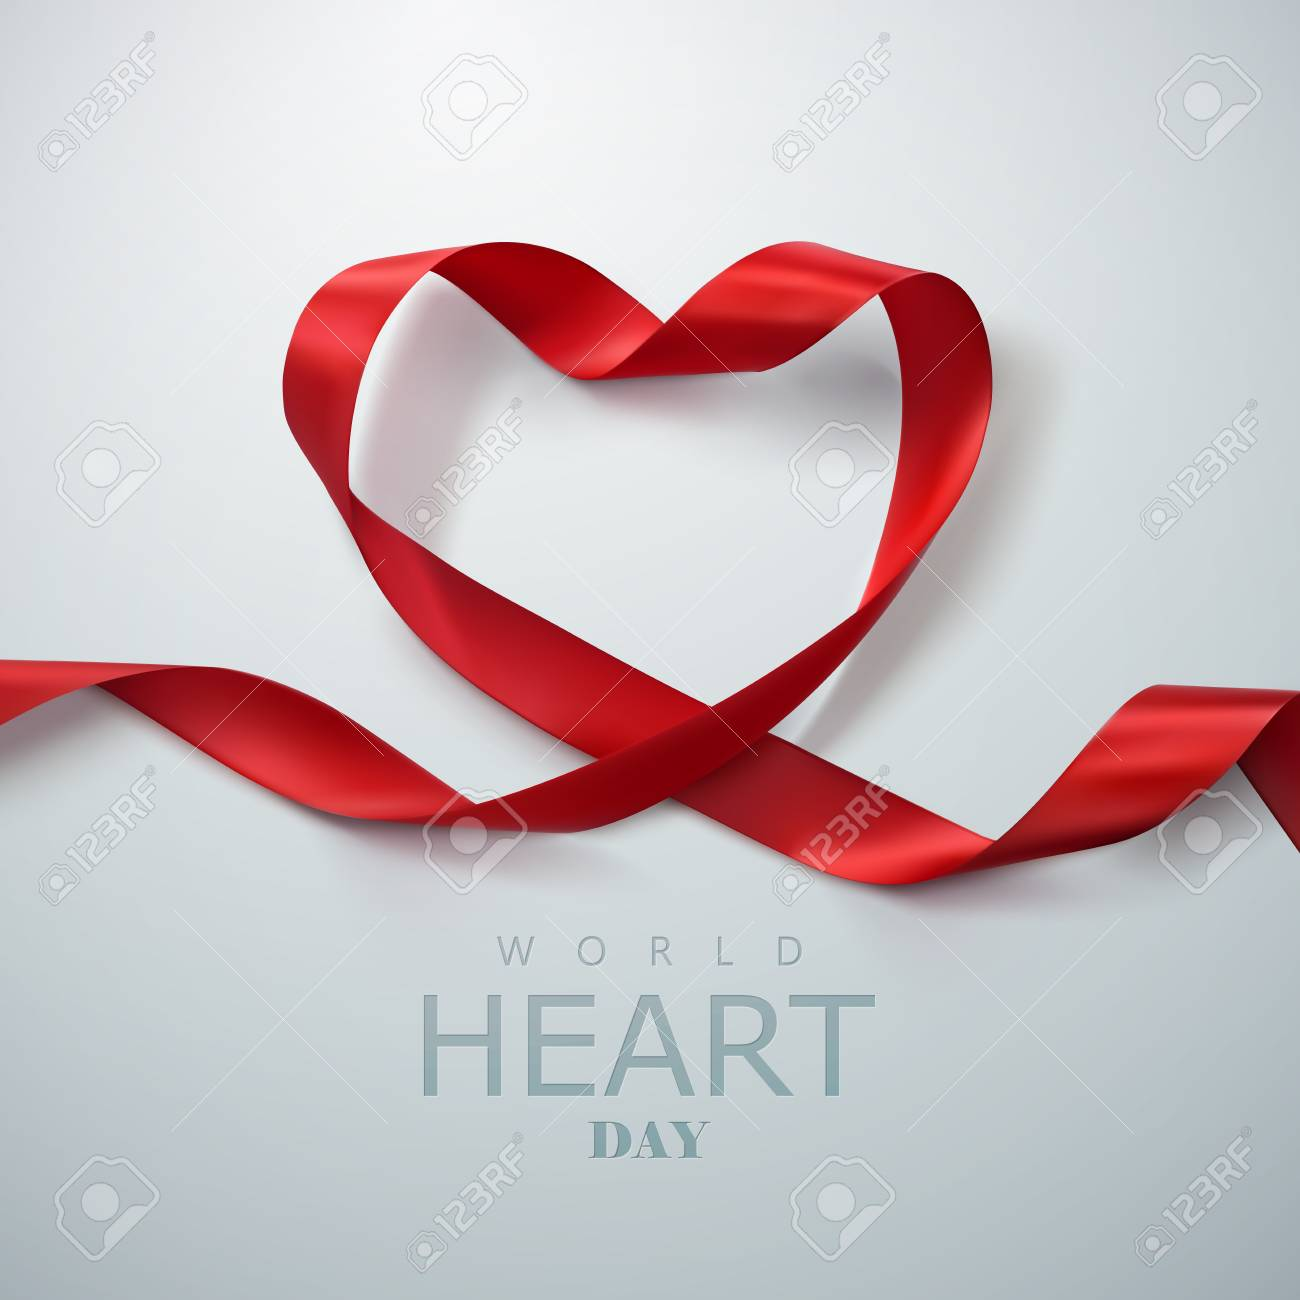 World Heart Day Background. Realistic satin ribbon heart with World Heart Day label. Vector illustration. Medical awareness day concept - 65399736